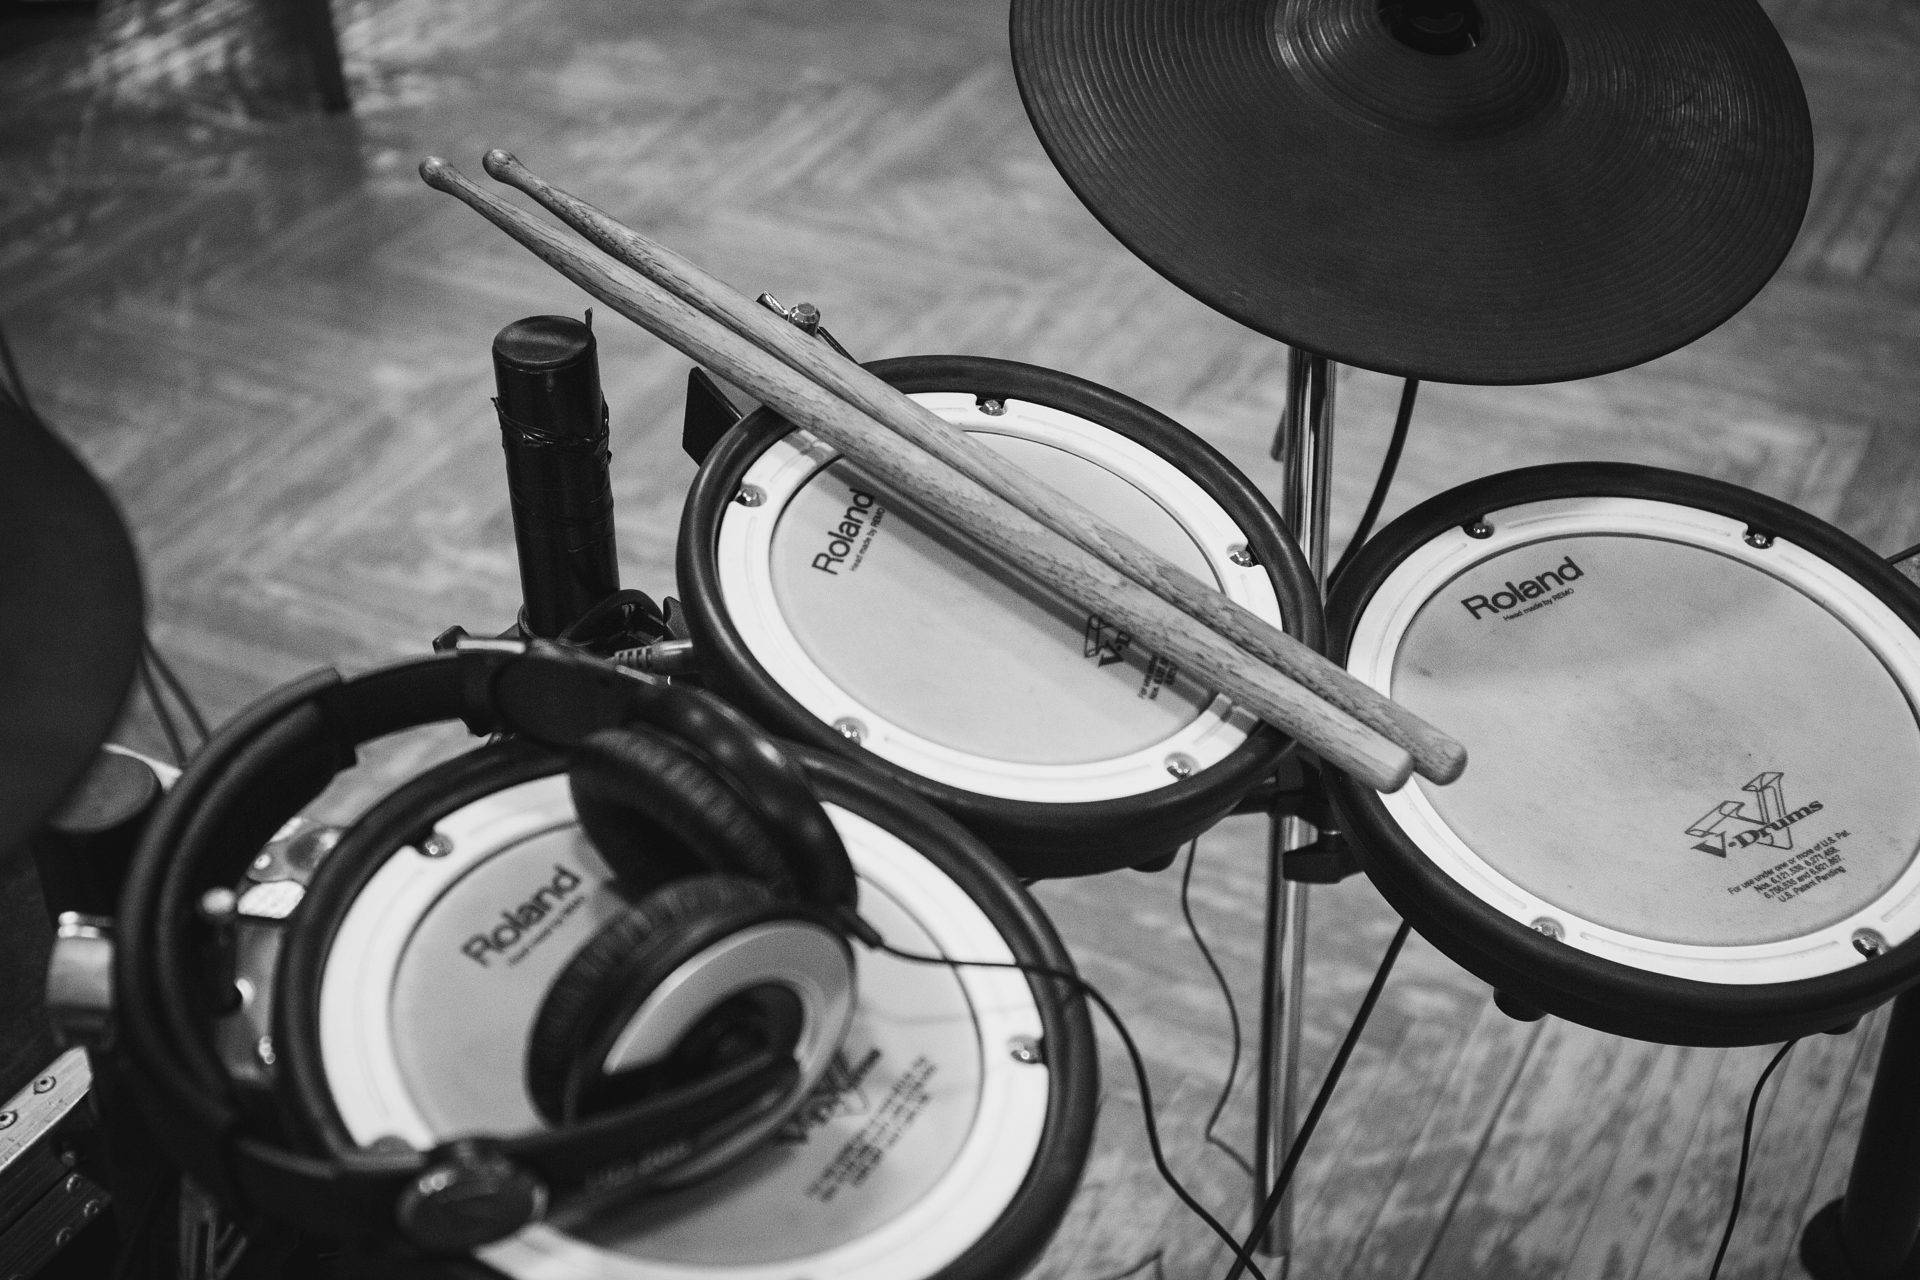 Roland TD 30KV Review - The Electronic Drum Kit of Your